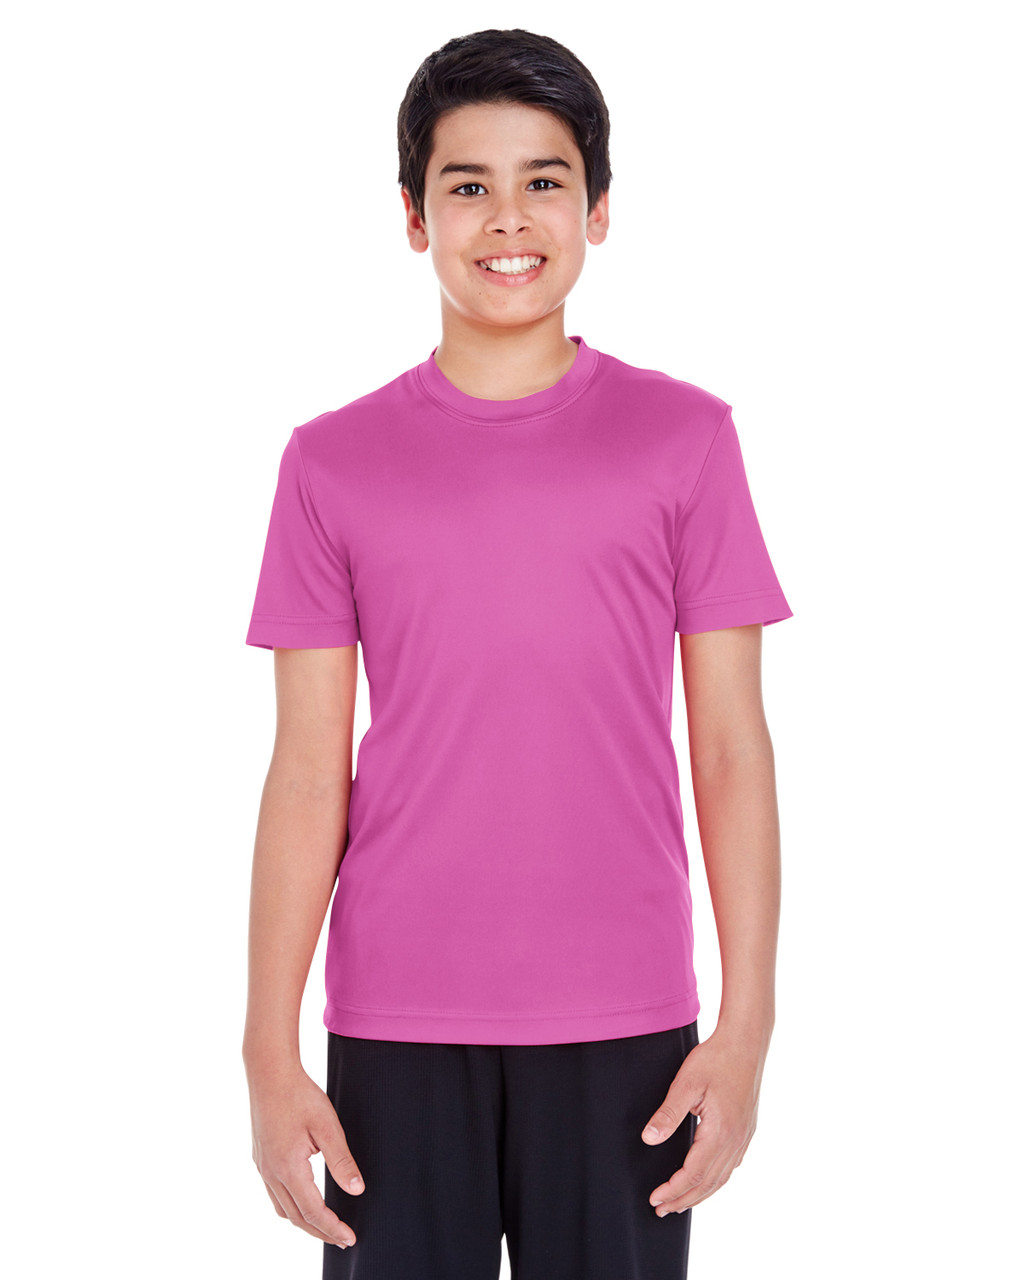 Sport Charity Pink - TT11Y Team 365 Youth Zone Performance Tee   BlankClothing.ca